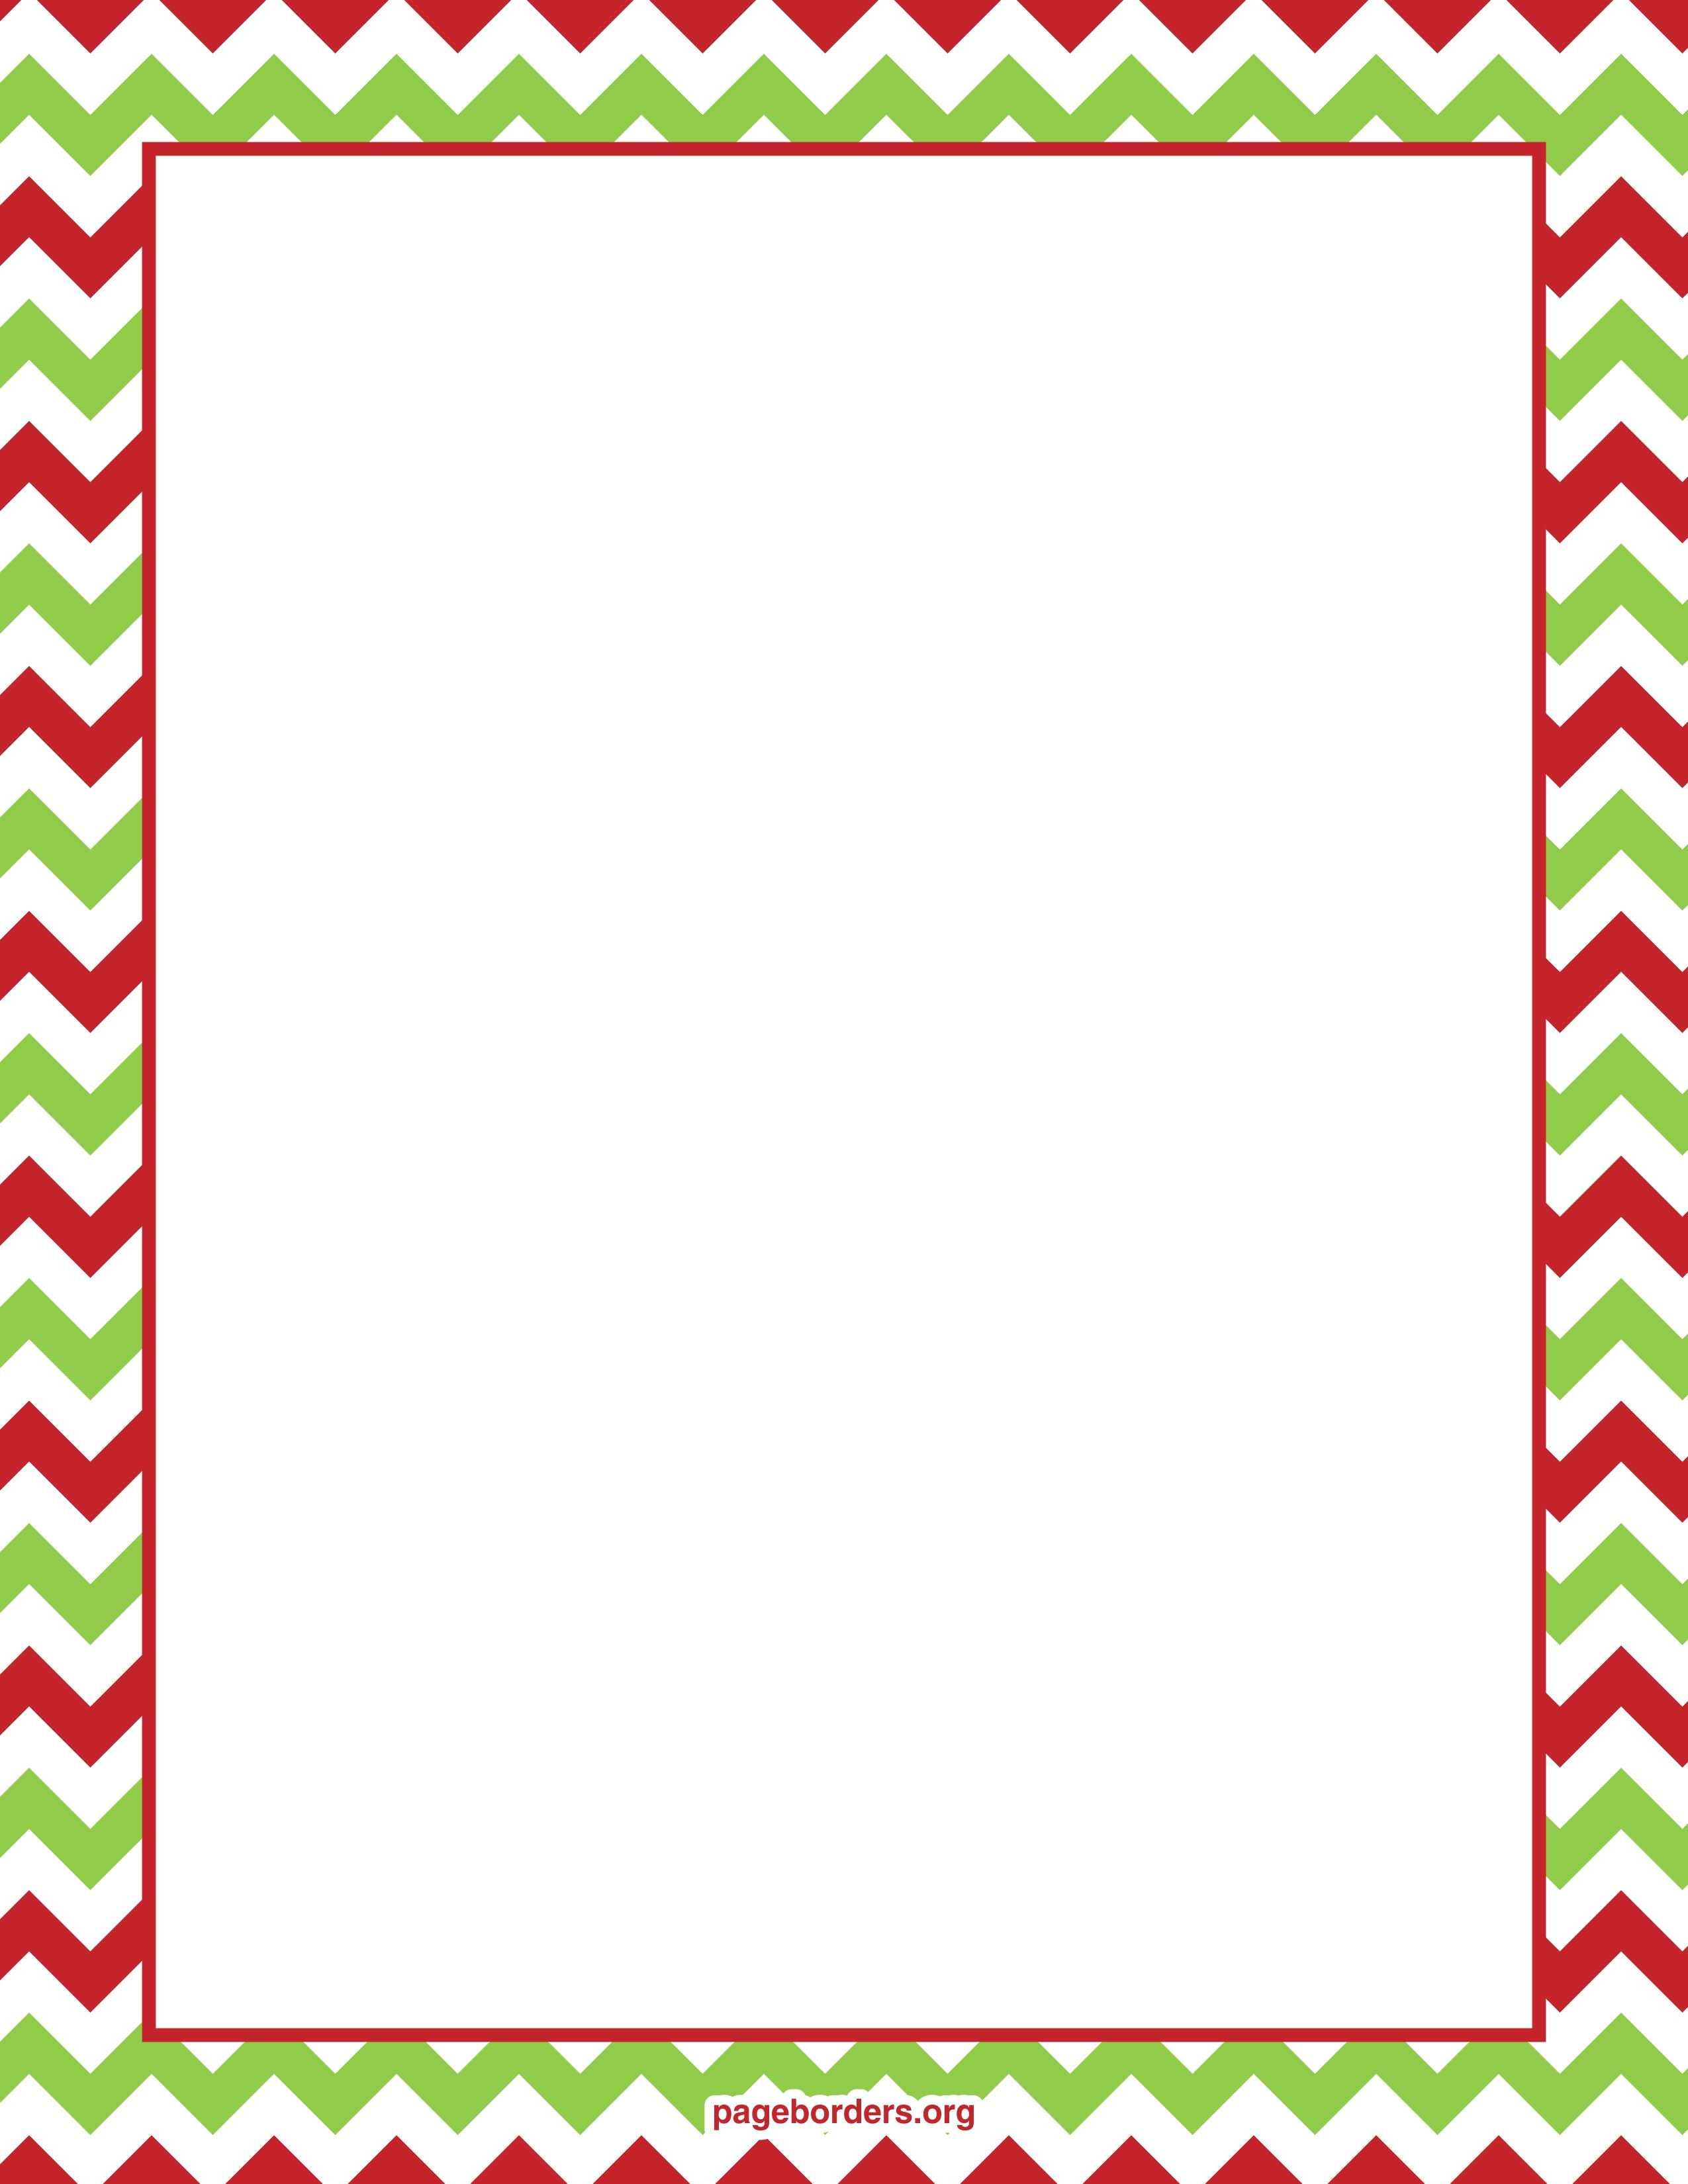 Borders free large images. Chevron clipart simple